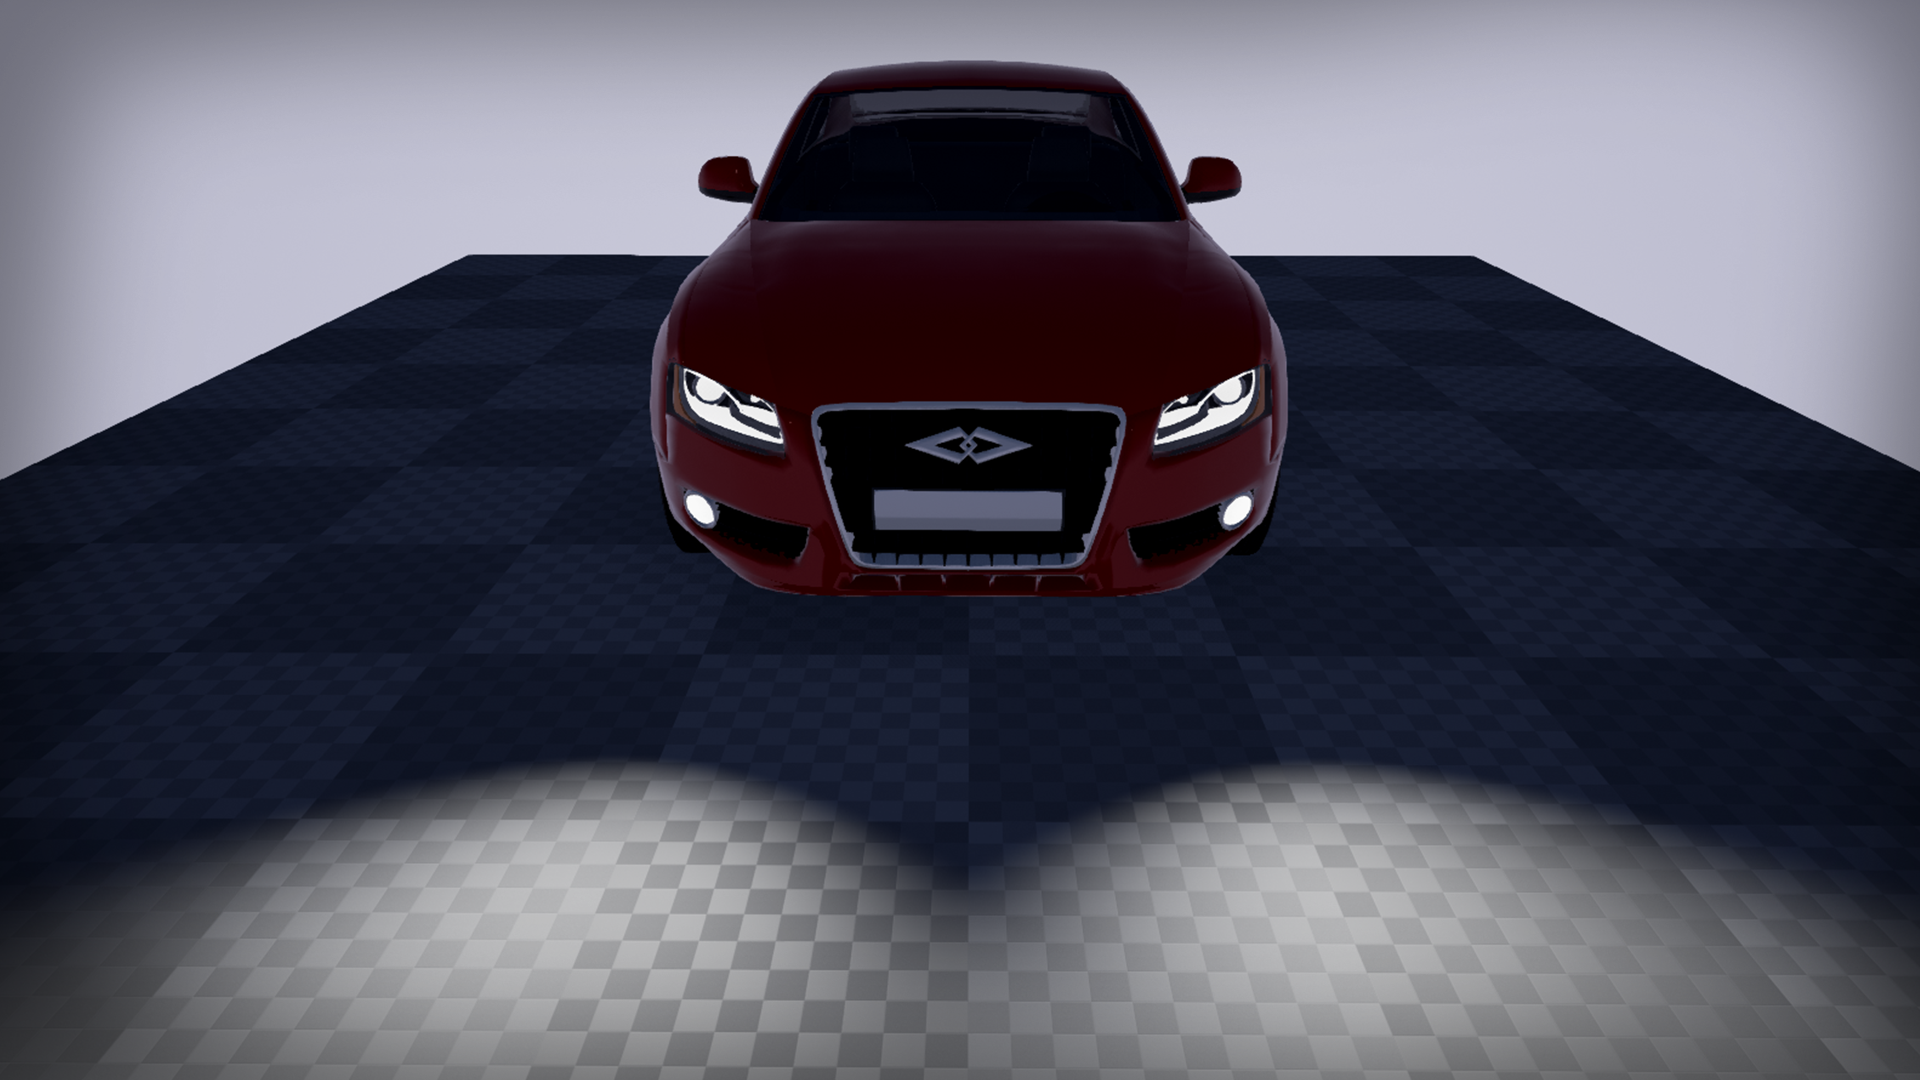 Broby car by broby 3d design in blueprints ue4 marketplace share malvernweather Image collections